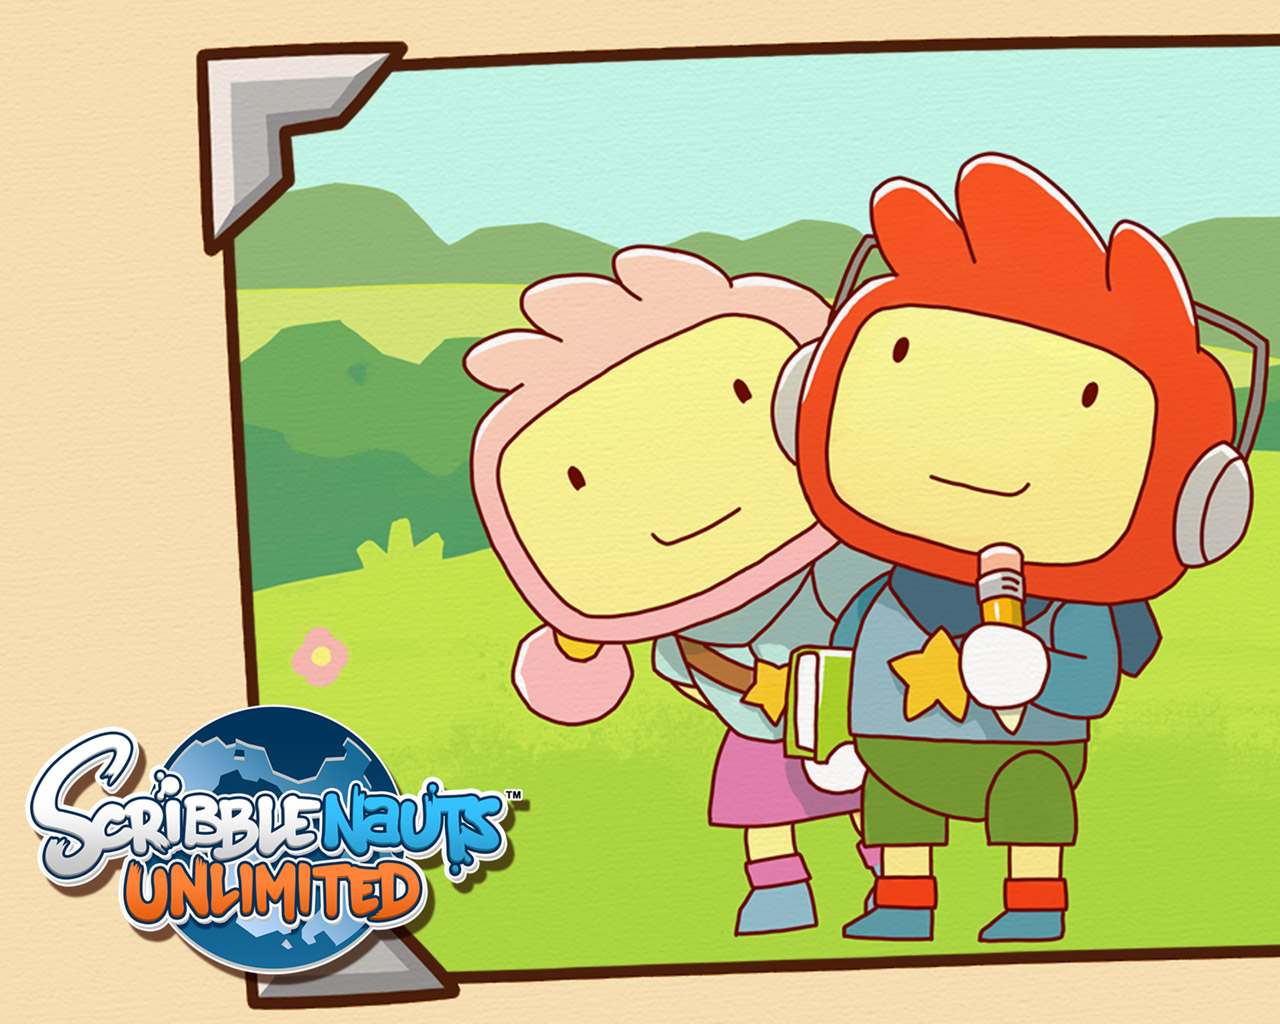 Free Scribblenauts Unlimited Wallpaper in 1280x1024